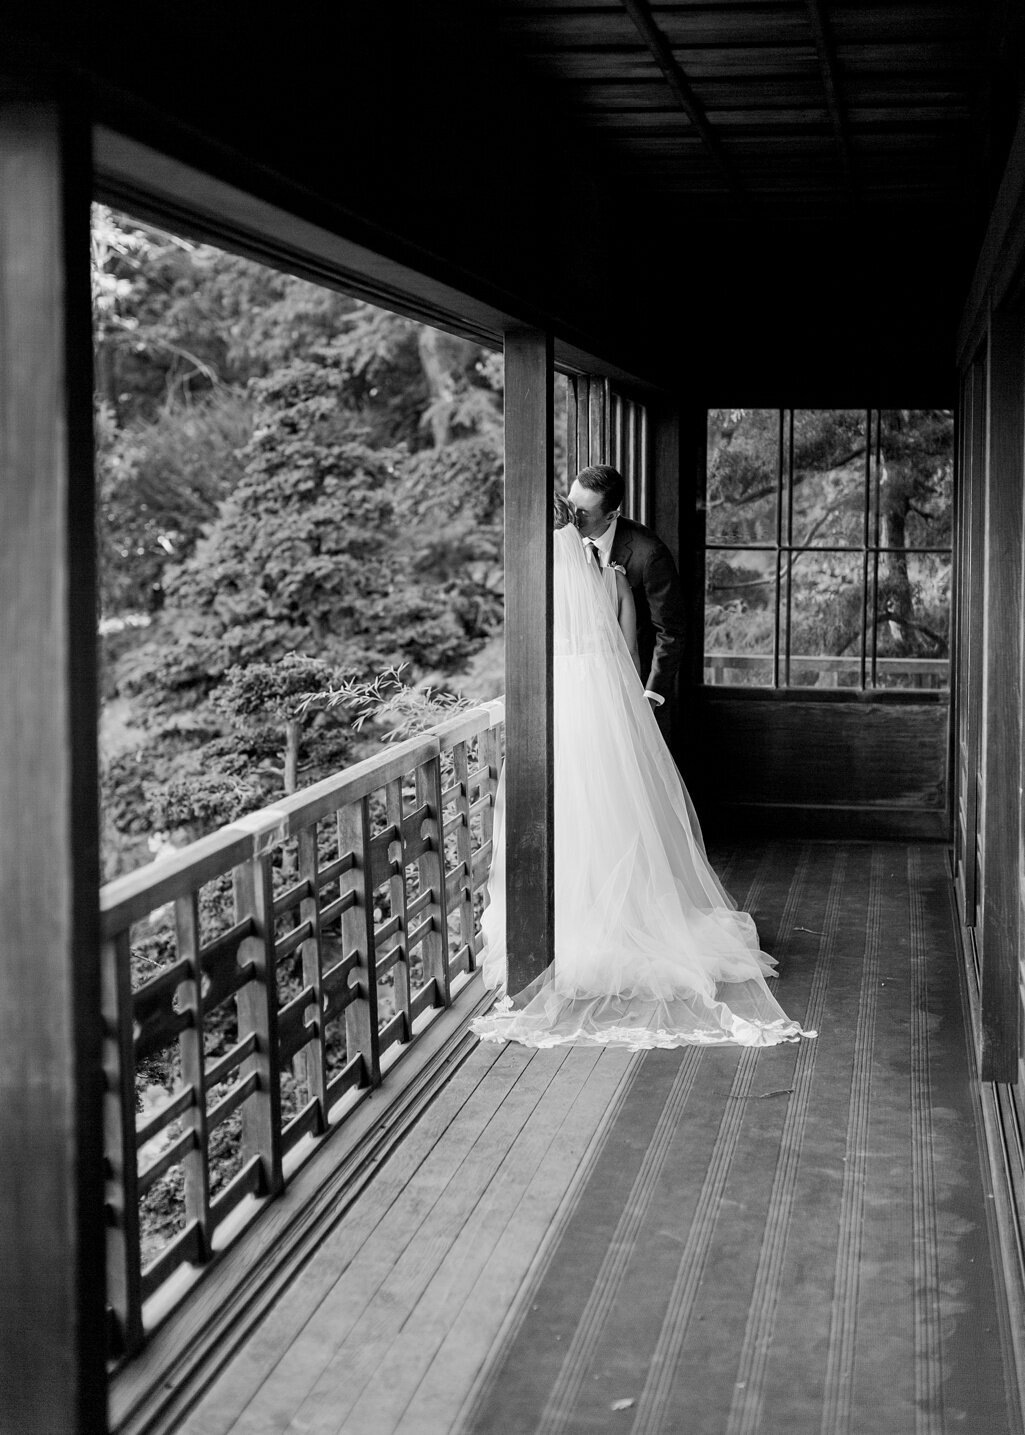 Jessie-Barksdale-Photography_Hakone-Gardens-Saratoga_San-Francisco-Bay-Area-Wedding-Photographer_0031